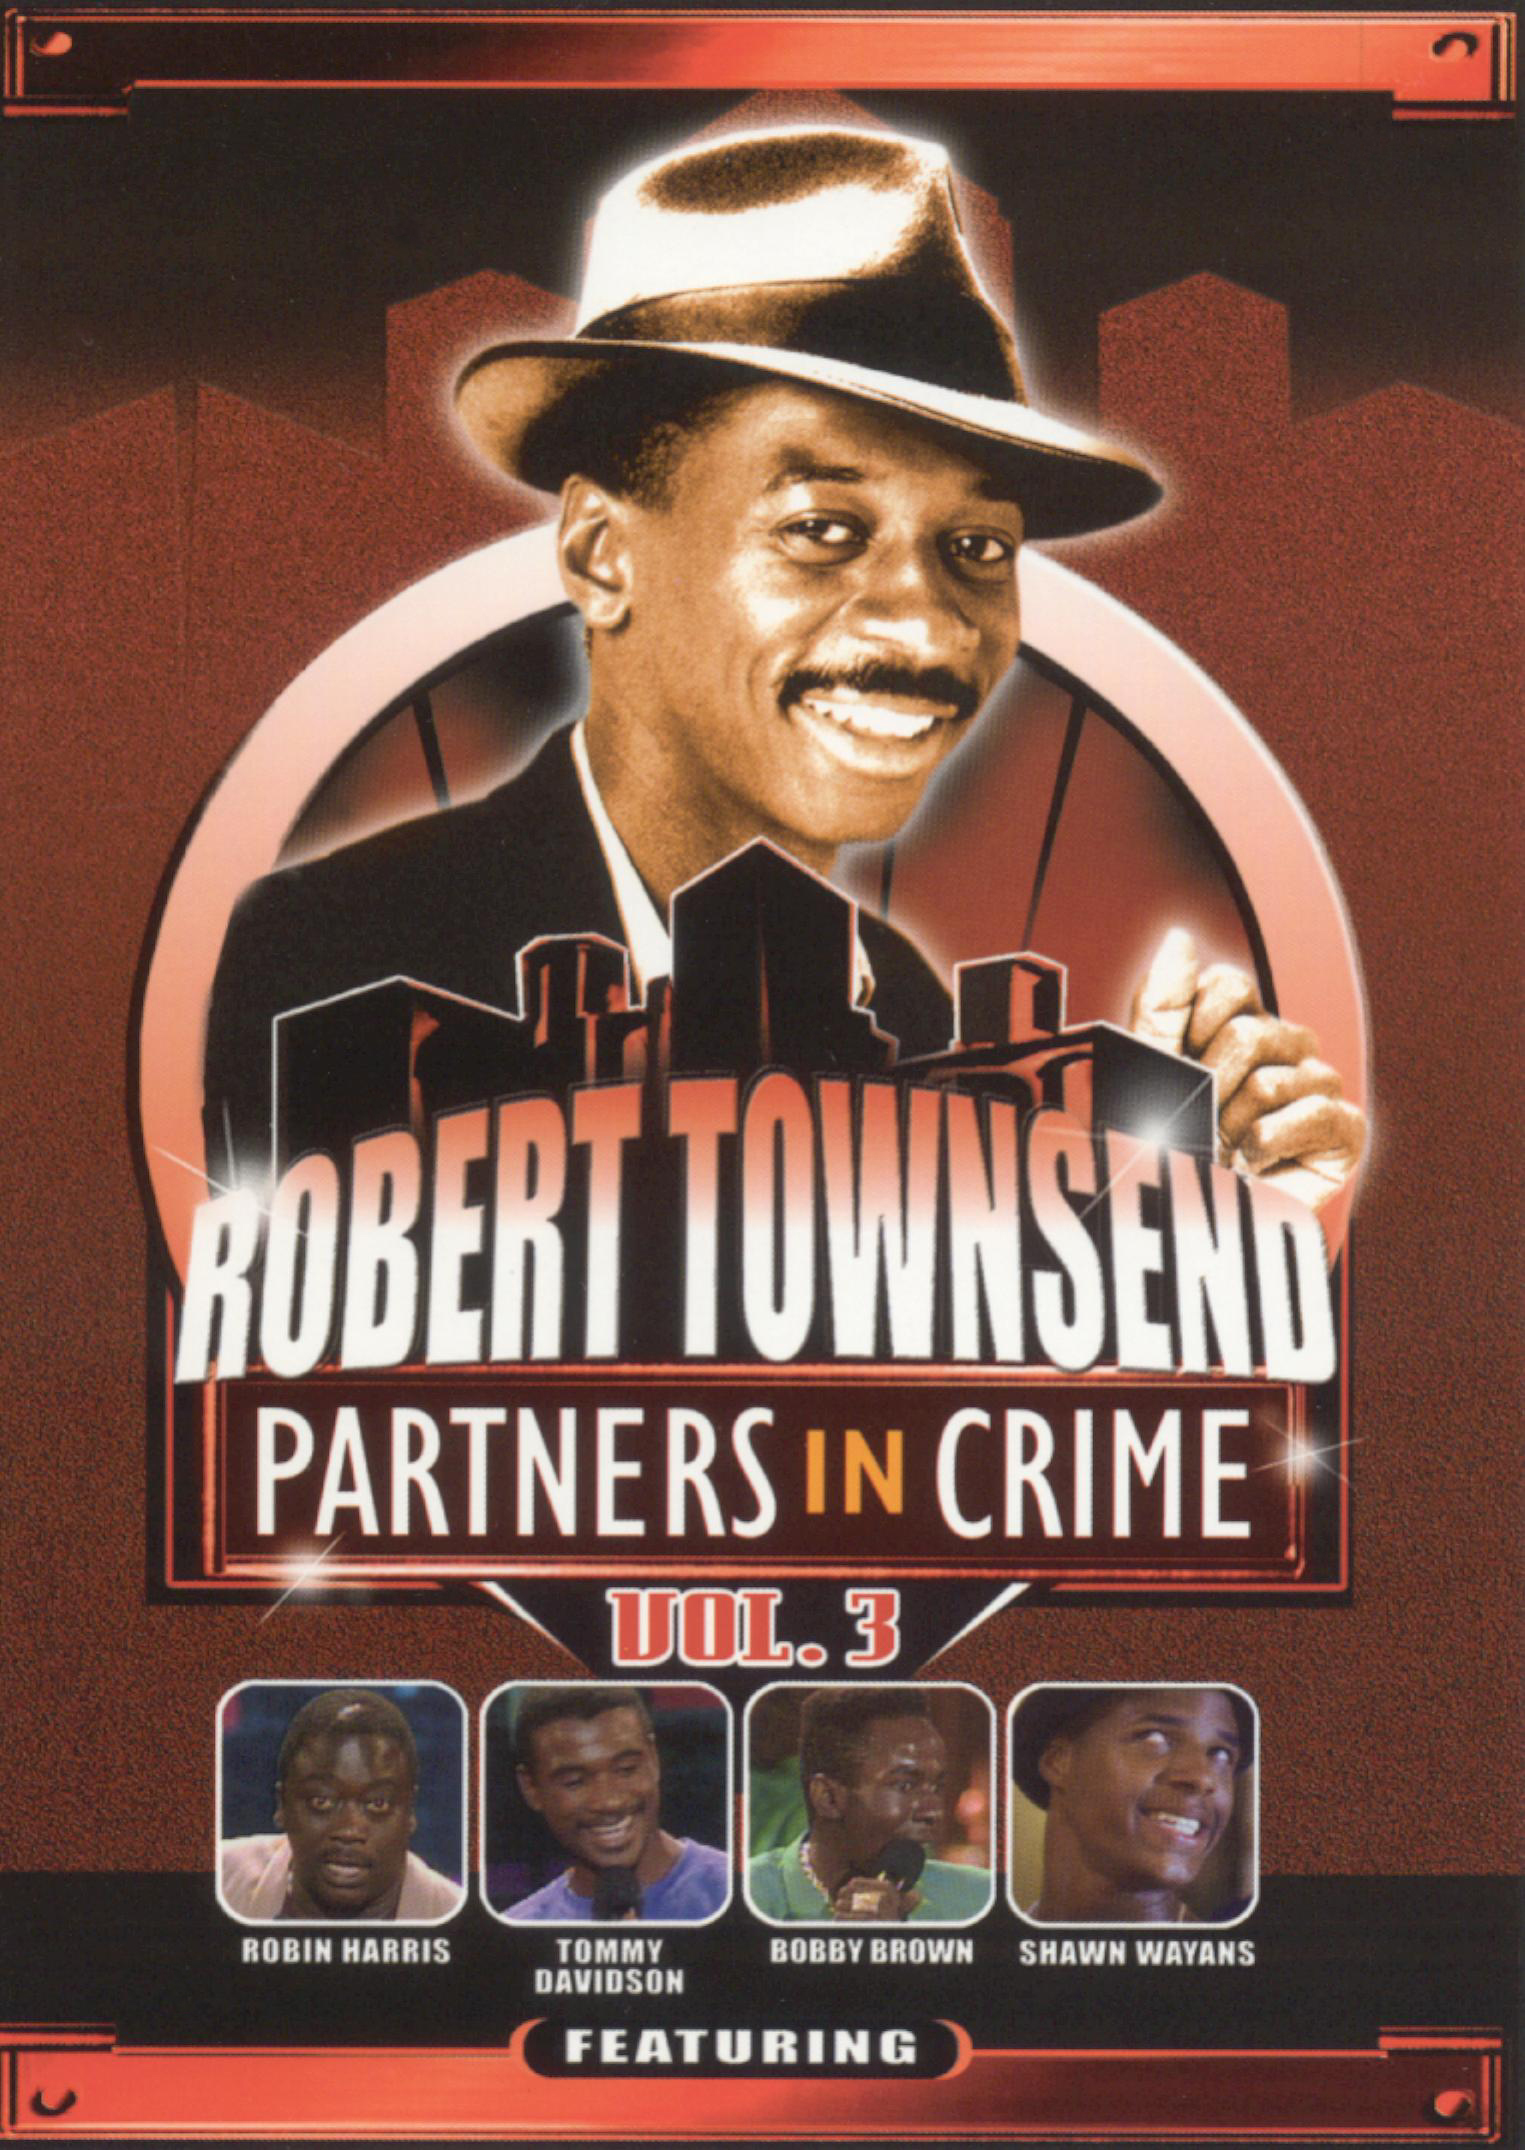 Robert Townsend: Partners in Crime, Vol. 3